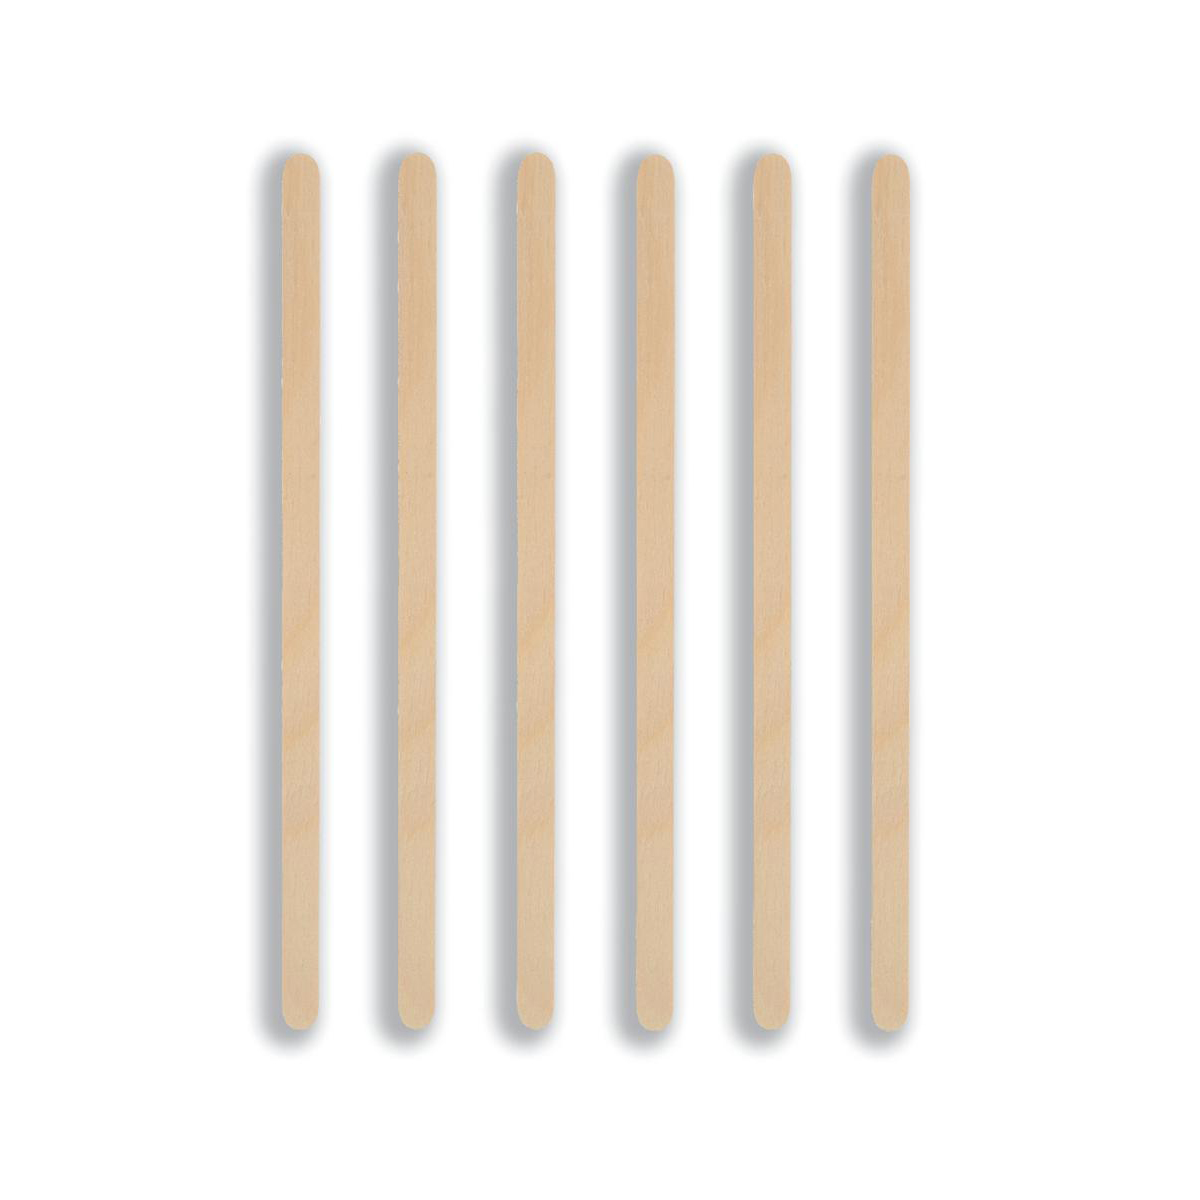 Washing Up Bowls / Brushes / Drainers Drink Stirrers Wooden 140mm Pack 1000